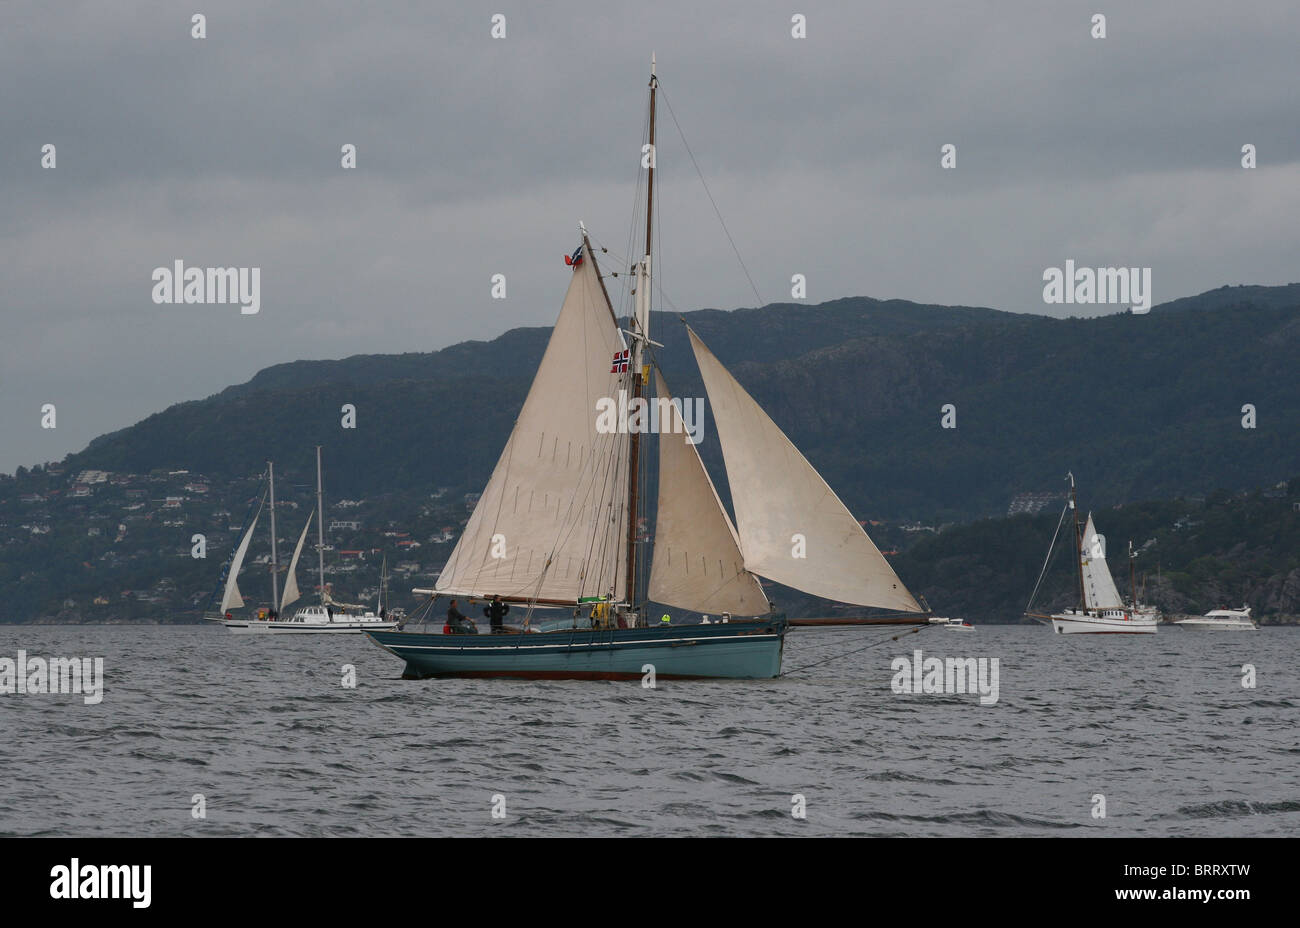 The Tall Ships Races 2008, Bergen - Stock Image